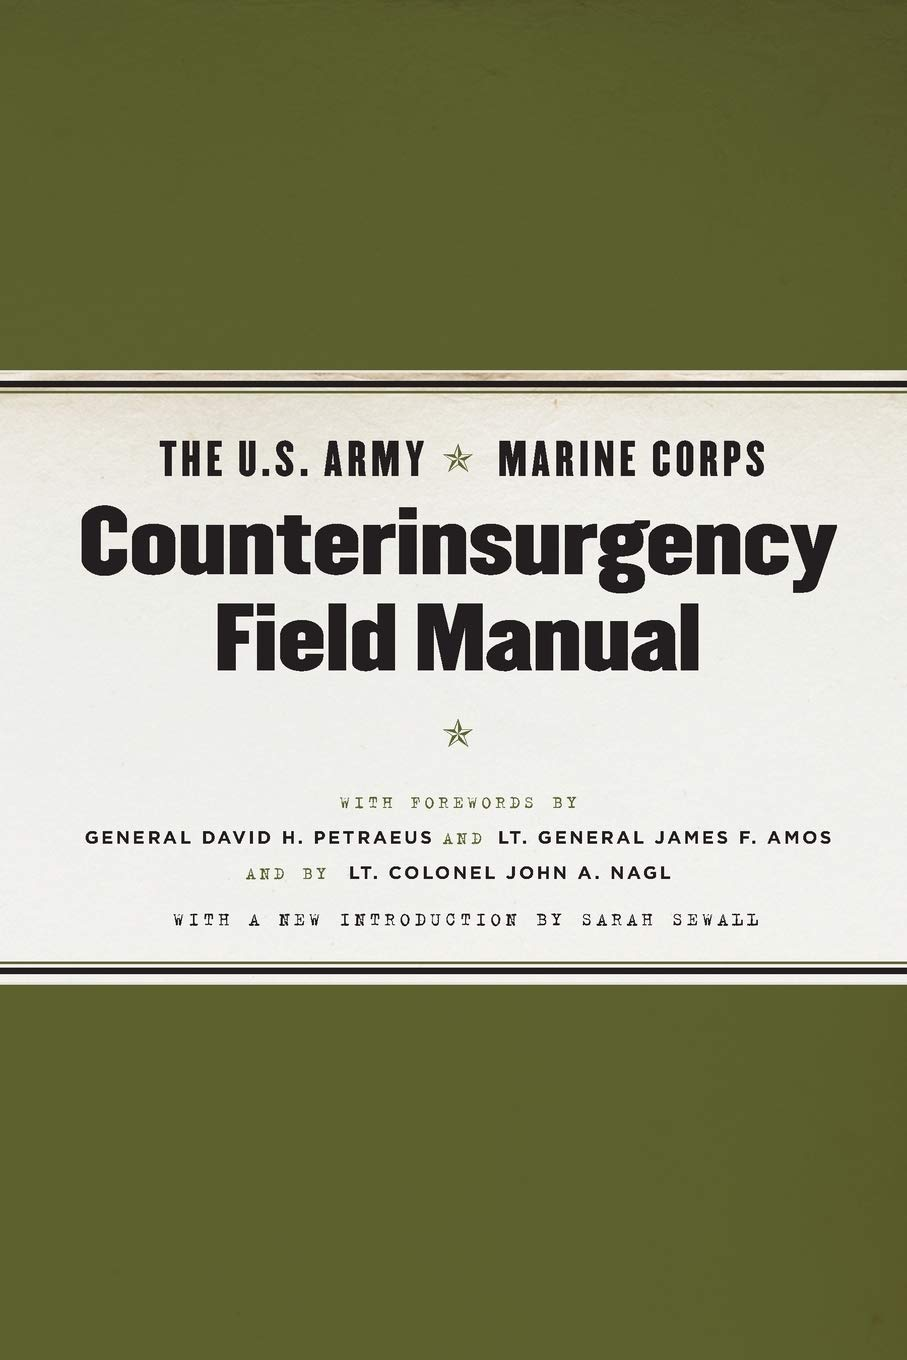 The U S Army Marine Corps Counterinsurgency Field Manual Amazon Co Uk United States Army John A United States Marine Corps Nagl John A Amos James F Sewall Sarah Petraeus David H 9780226841519 Books